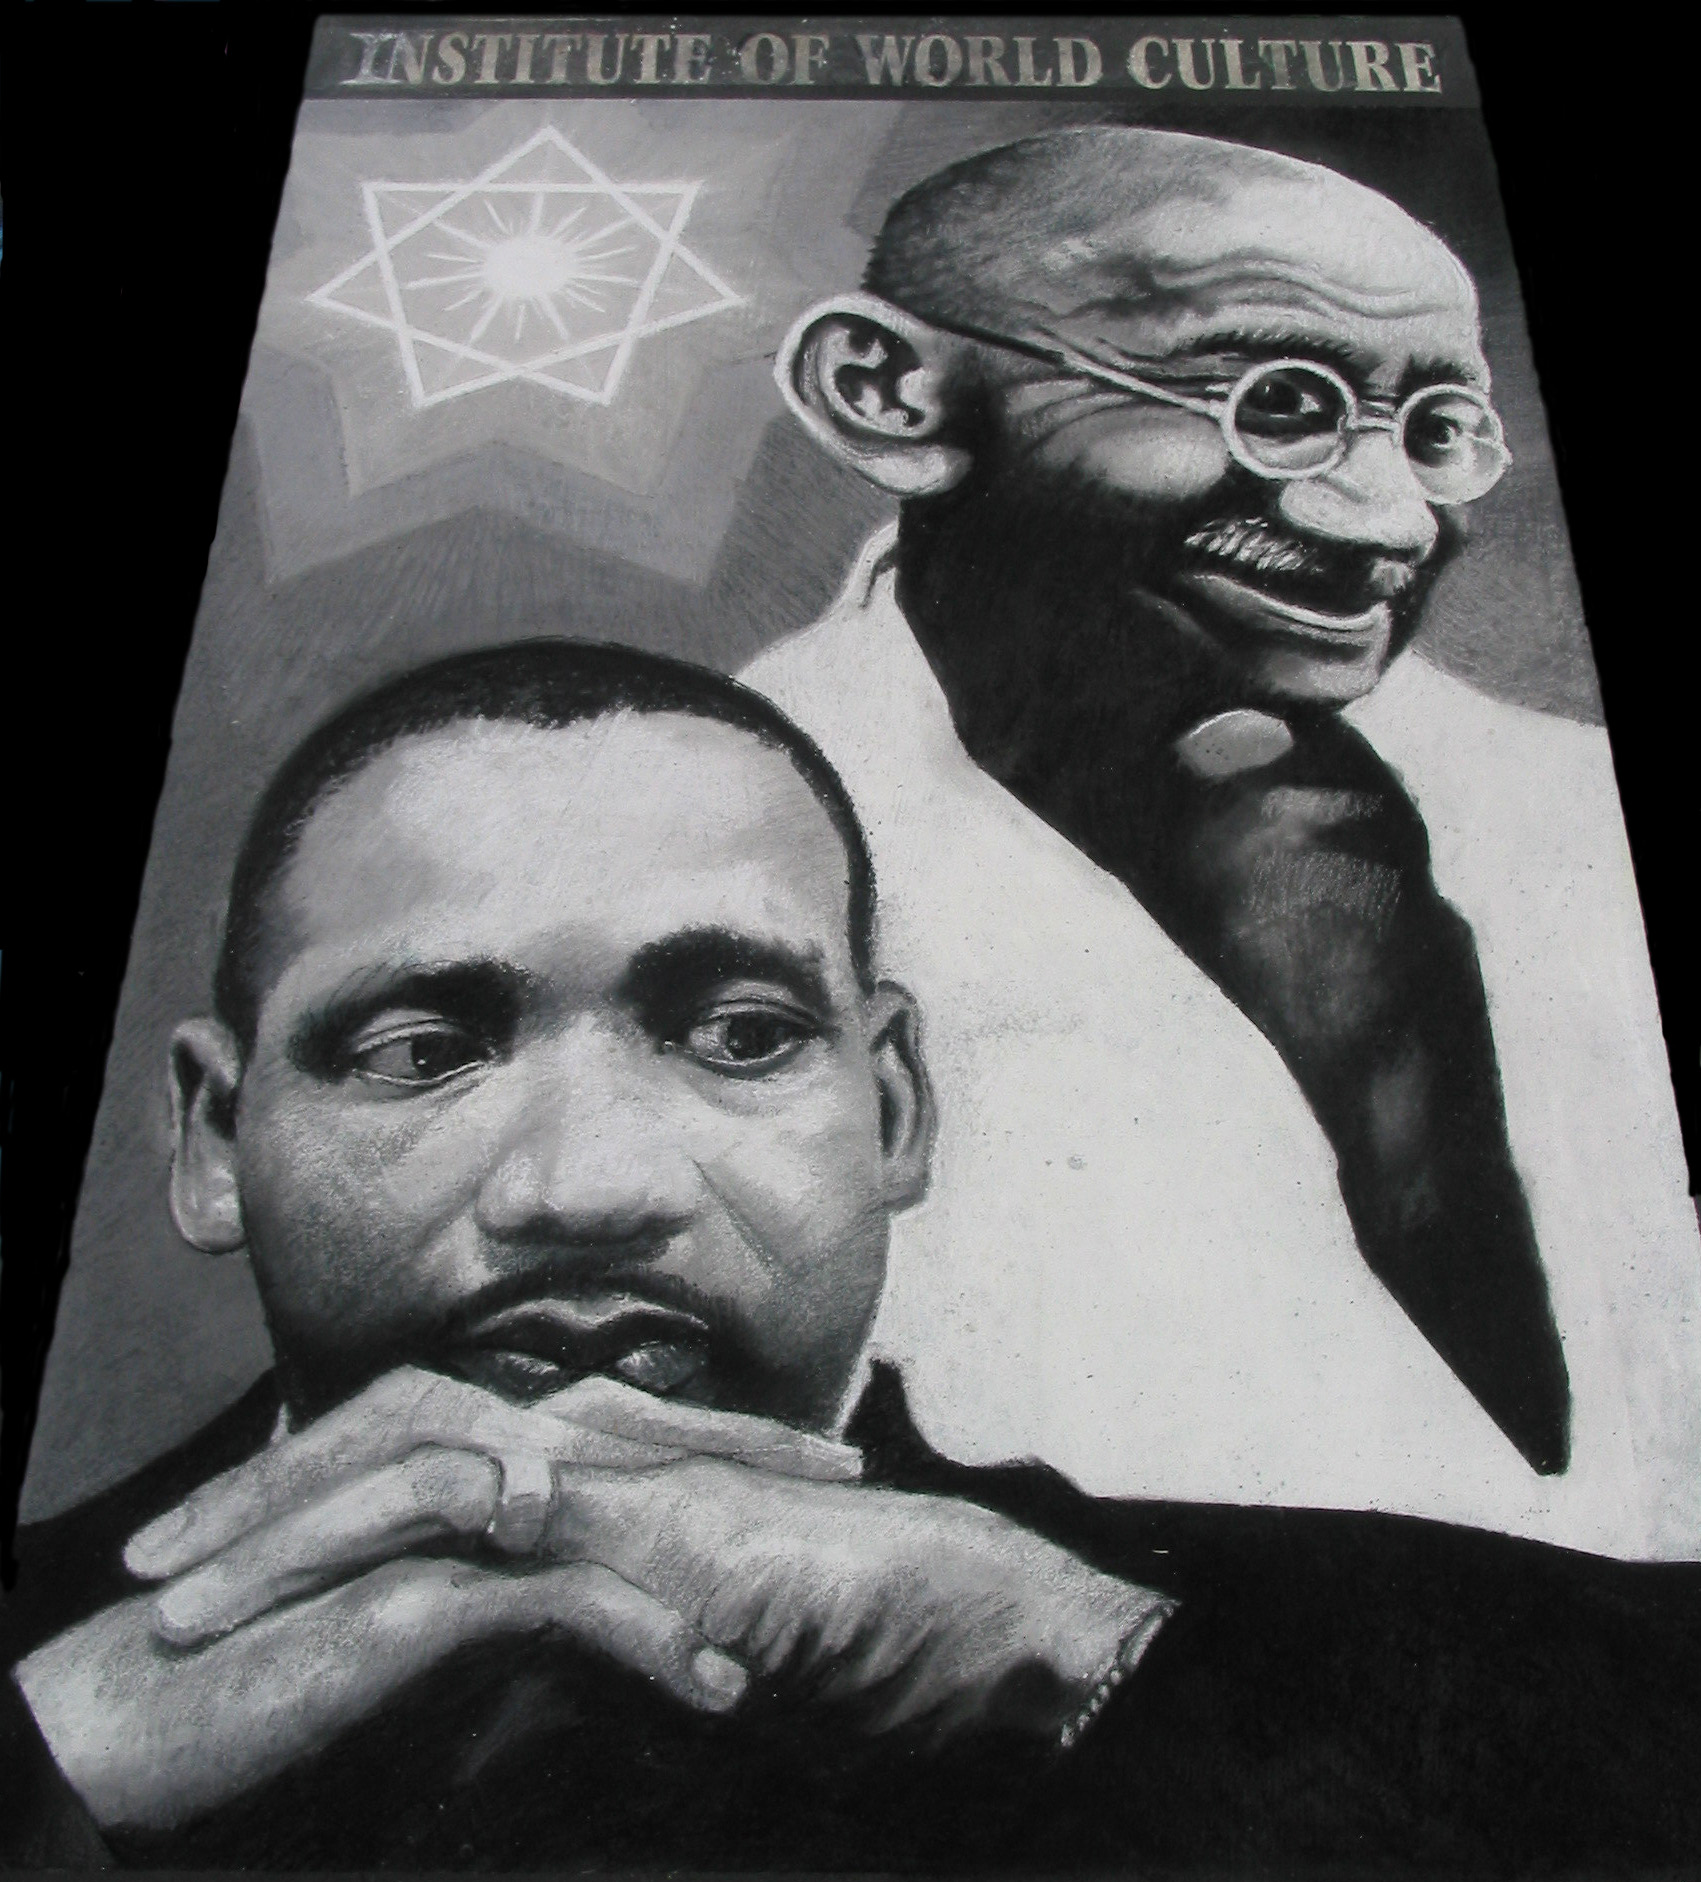 comparison and contrast of martin luther king jr and mahatma gandhi as modern day prophets